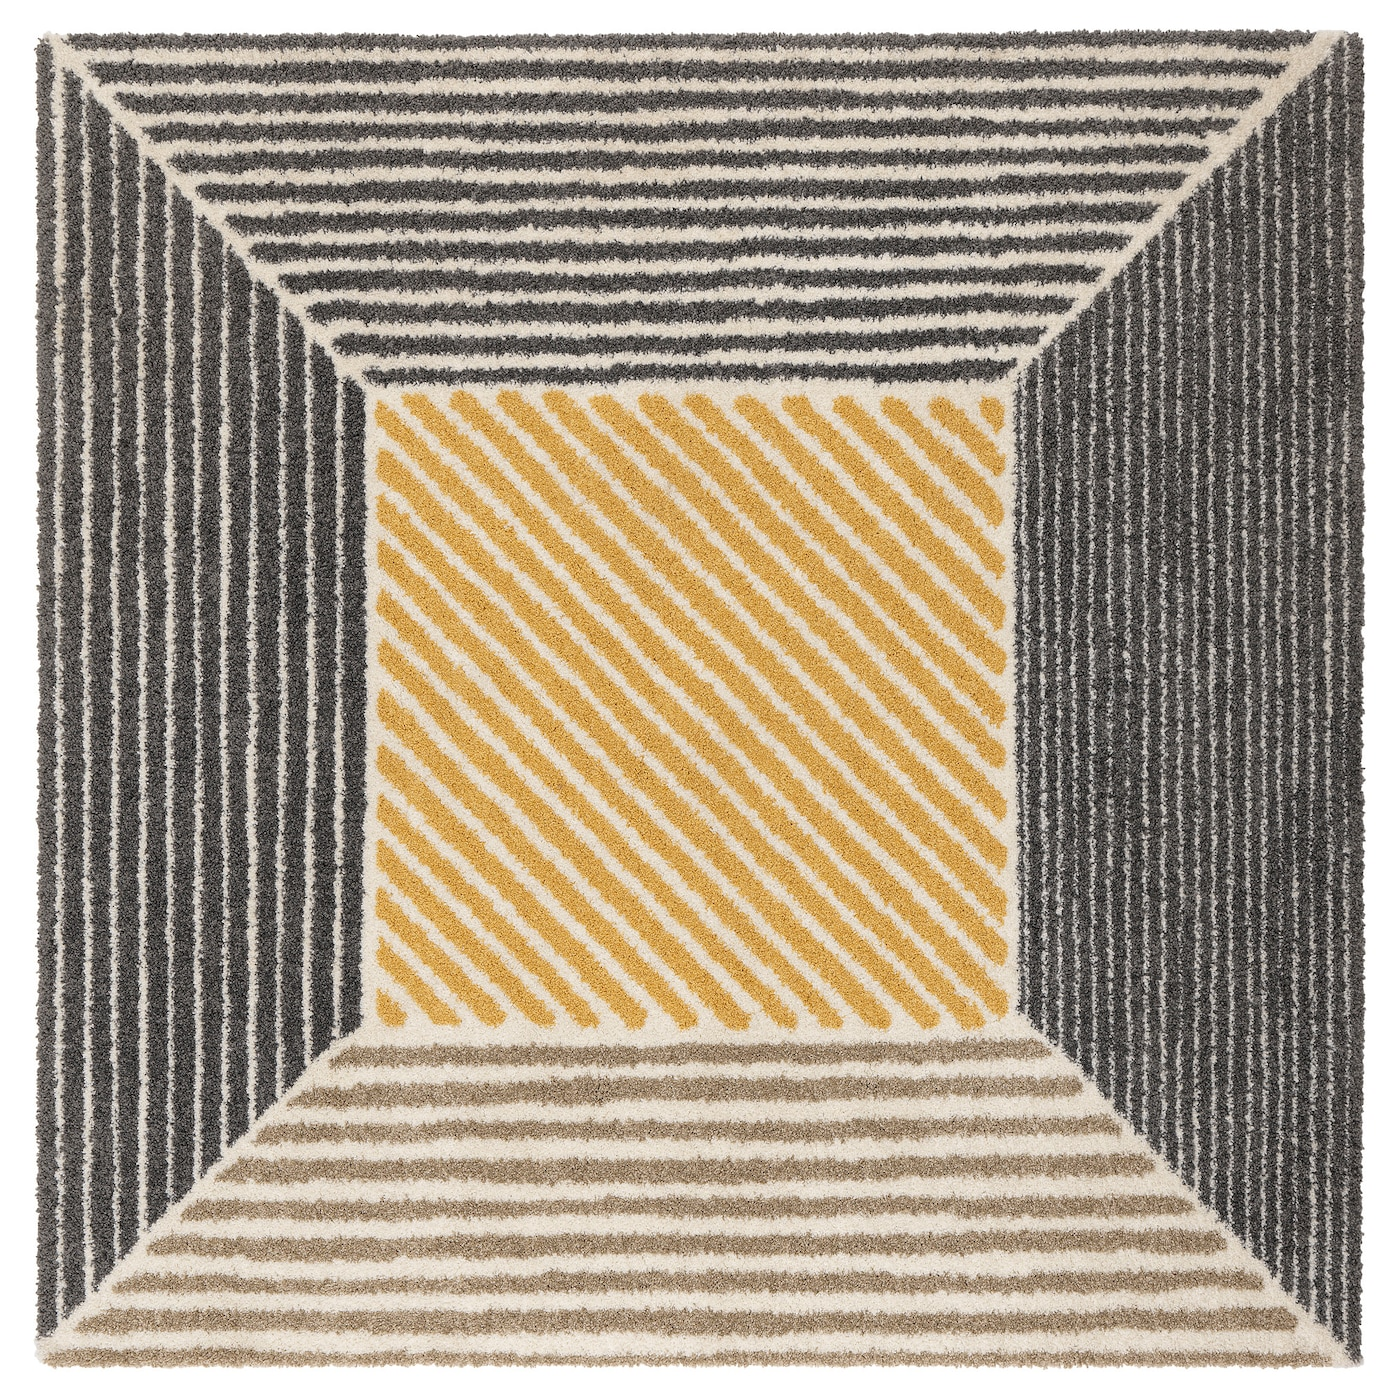 birket rug high pile yellow grey 200x200 cm ikea. Black Bedroom Furniture Sets. Home Design Ideas